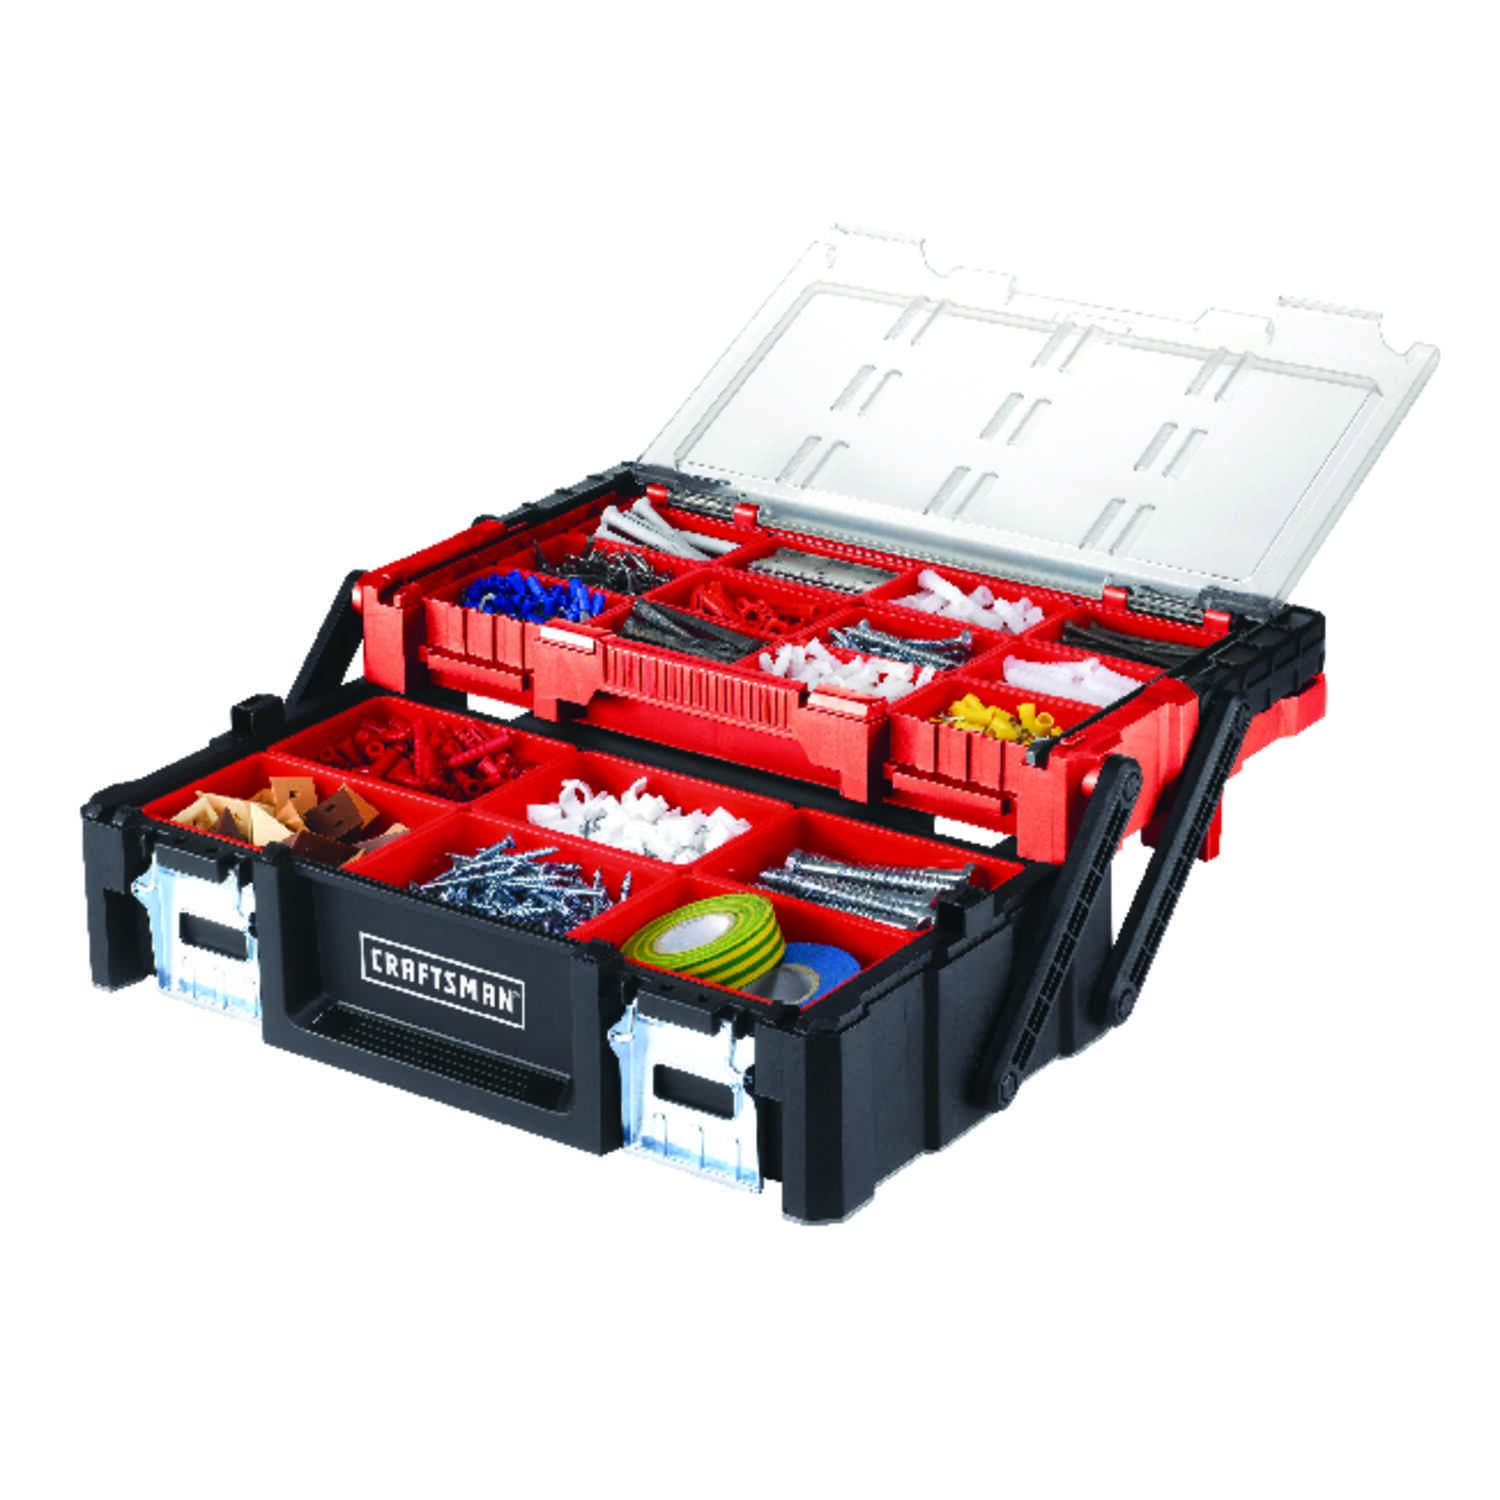 Craftsman  18 in. Plastic  Toolbox  5.71 in. H x 9.4 in. W Black